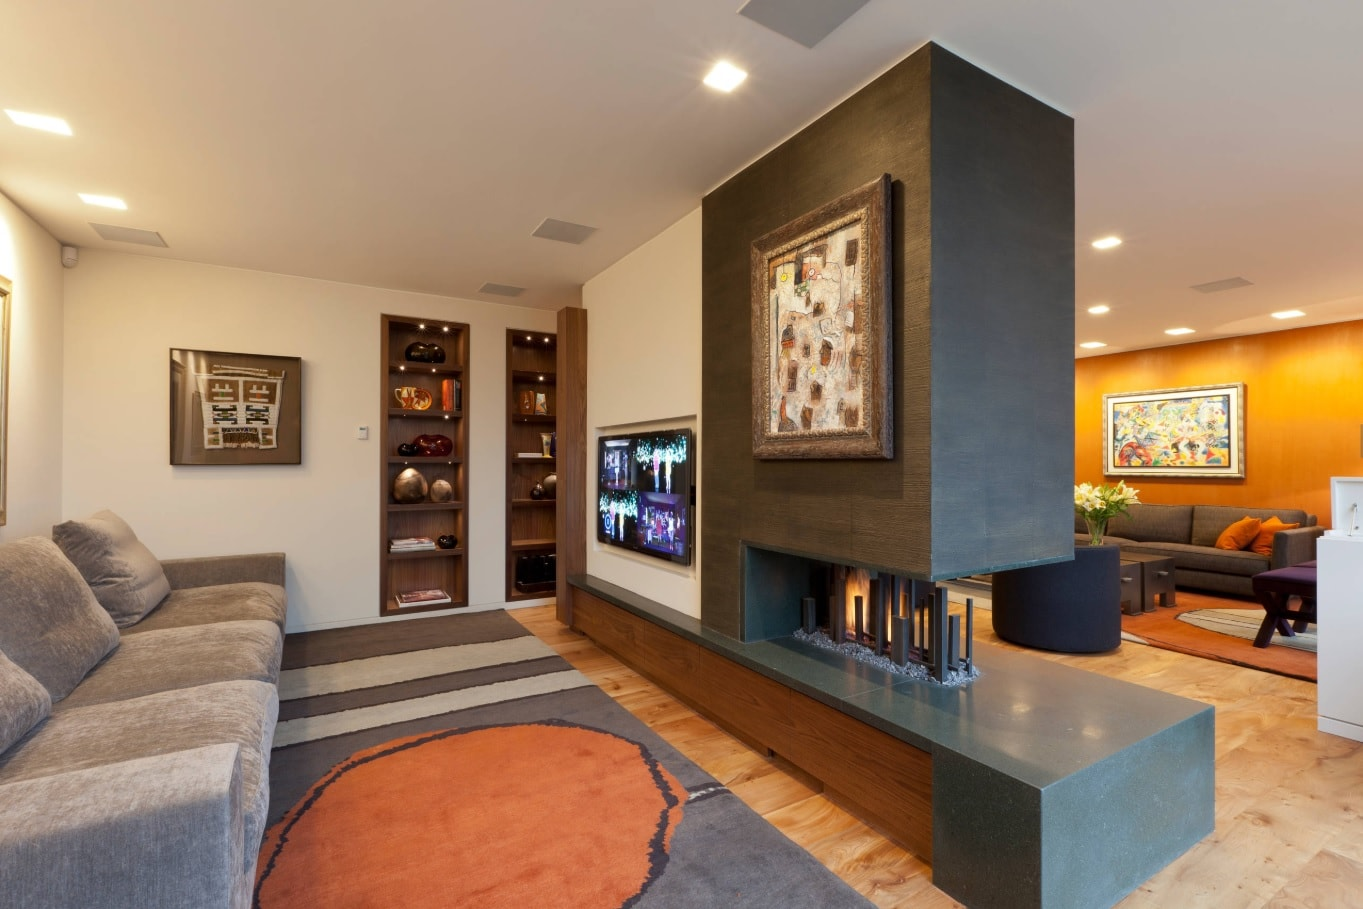 Dark accents in the casual styled living room with partition zoning